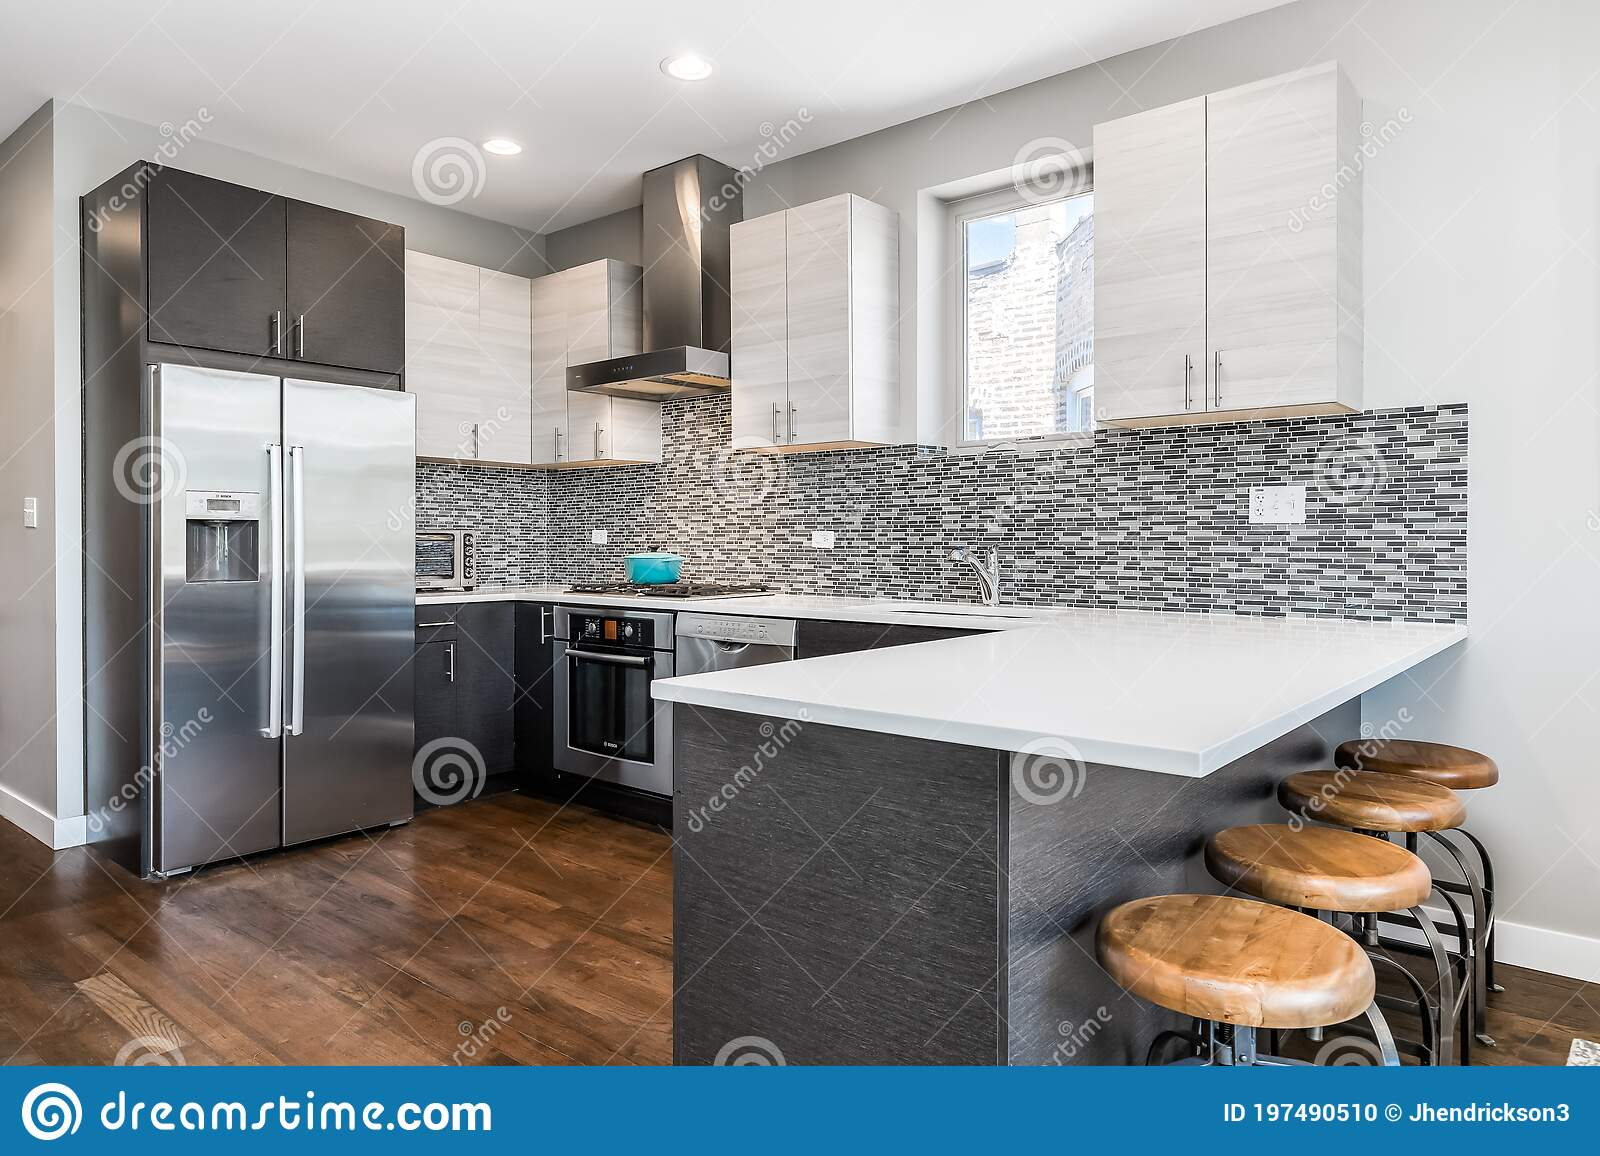 A Modern Kitchen With Bar Stools At The Counter Top. Editorial ...